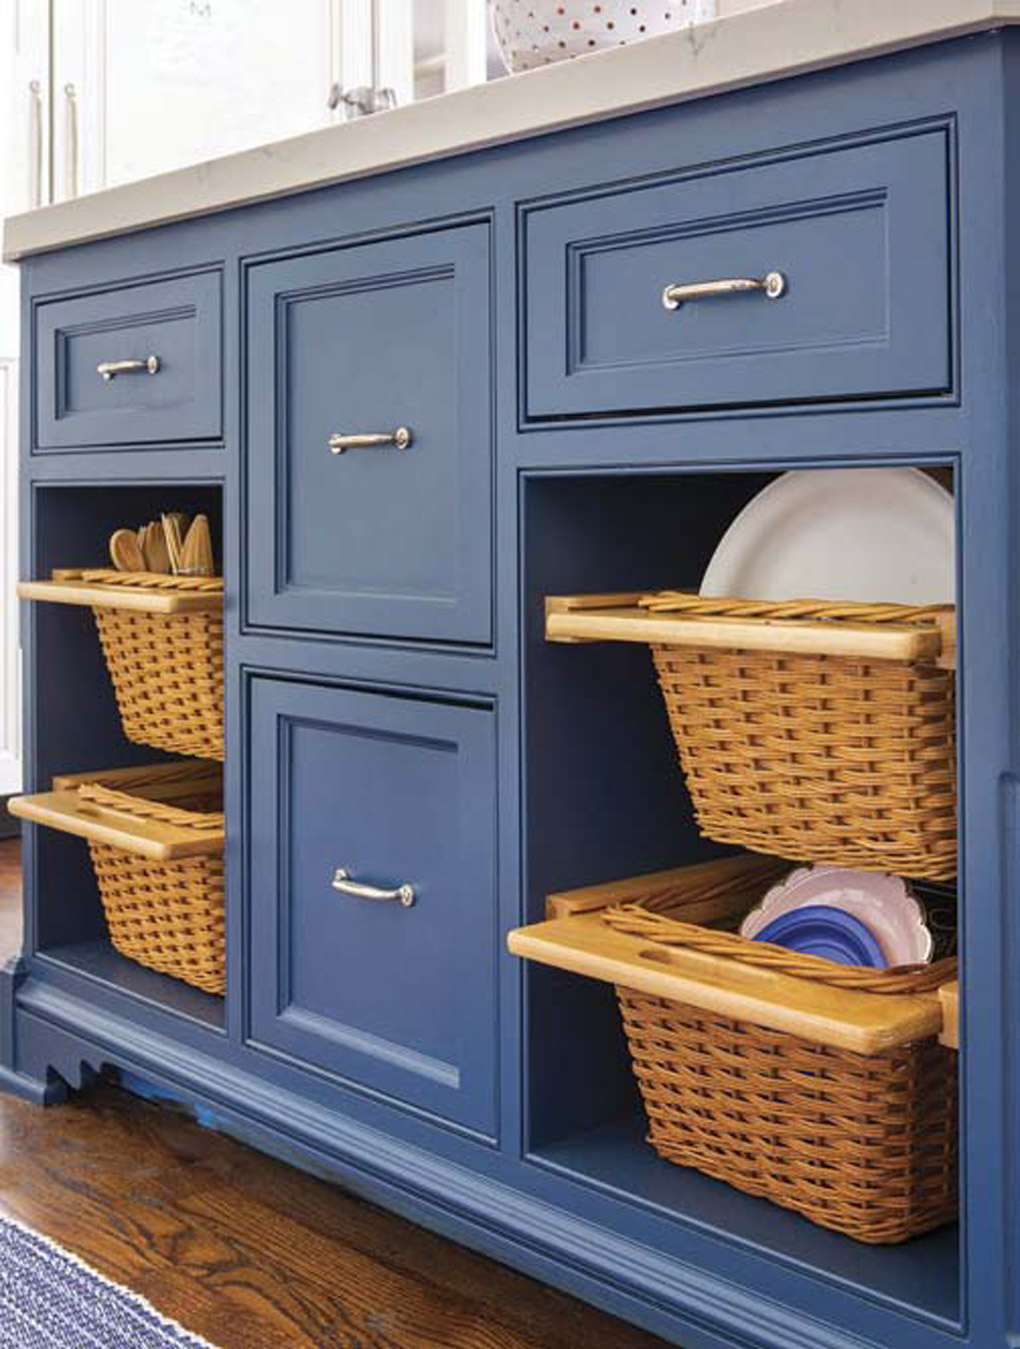 Blue lower cabinets with custom cutouts storing wicker storage baskets.